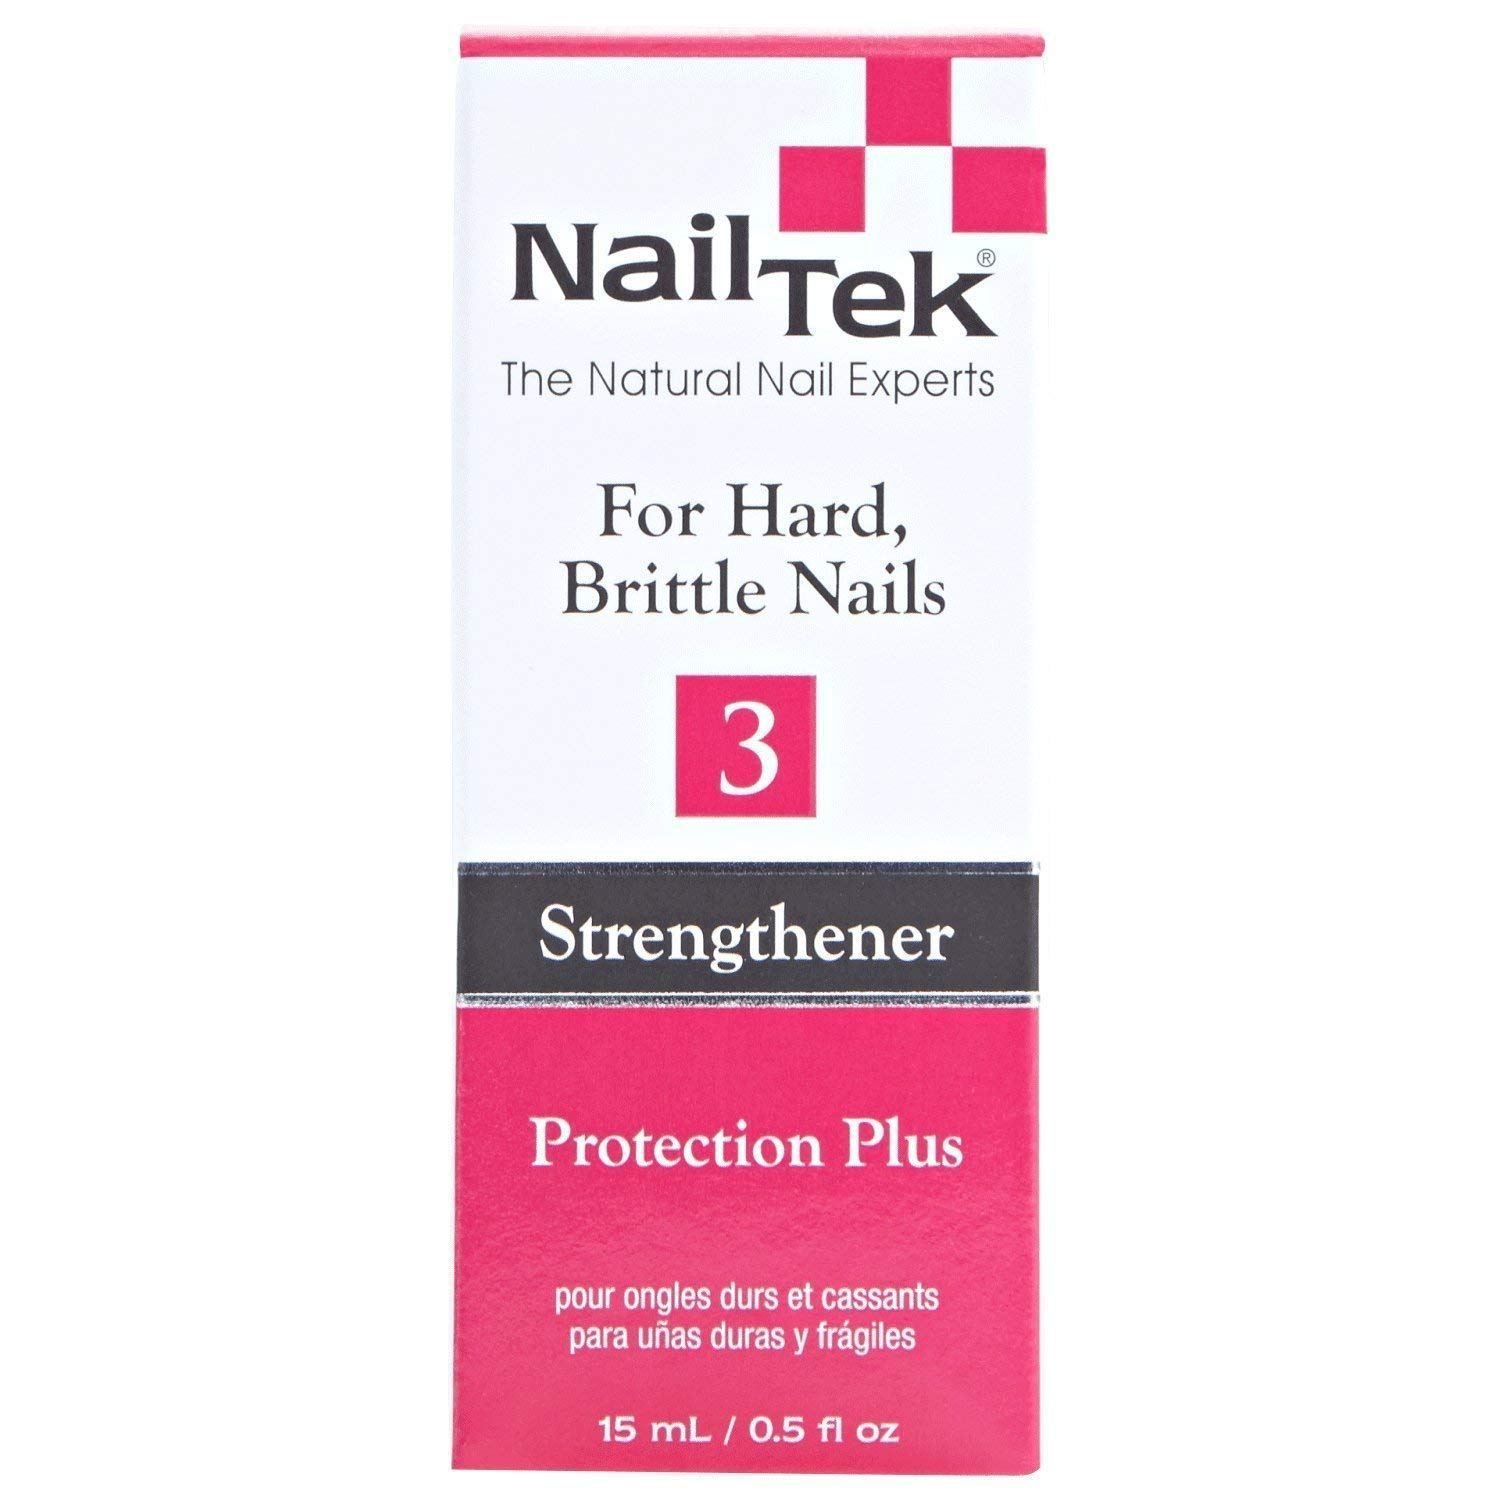 Nailtek Protection Plus III for Dry Brittle Nails, 0.5 Fluid Ounce 804